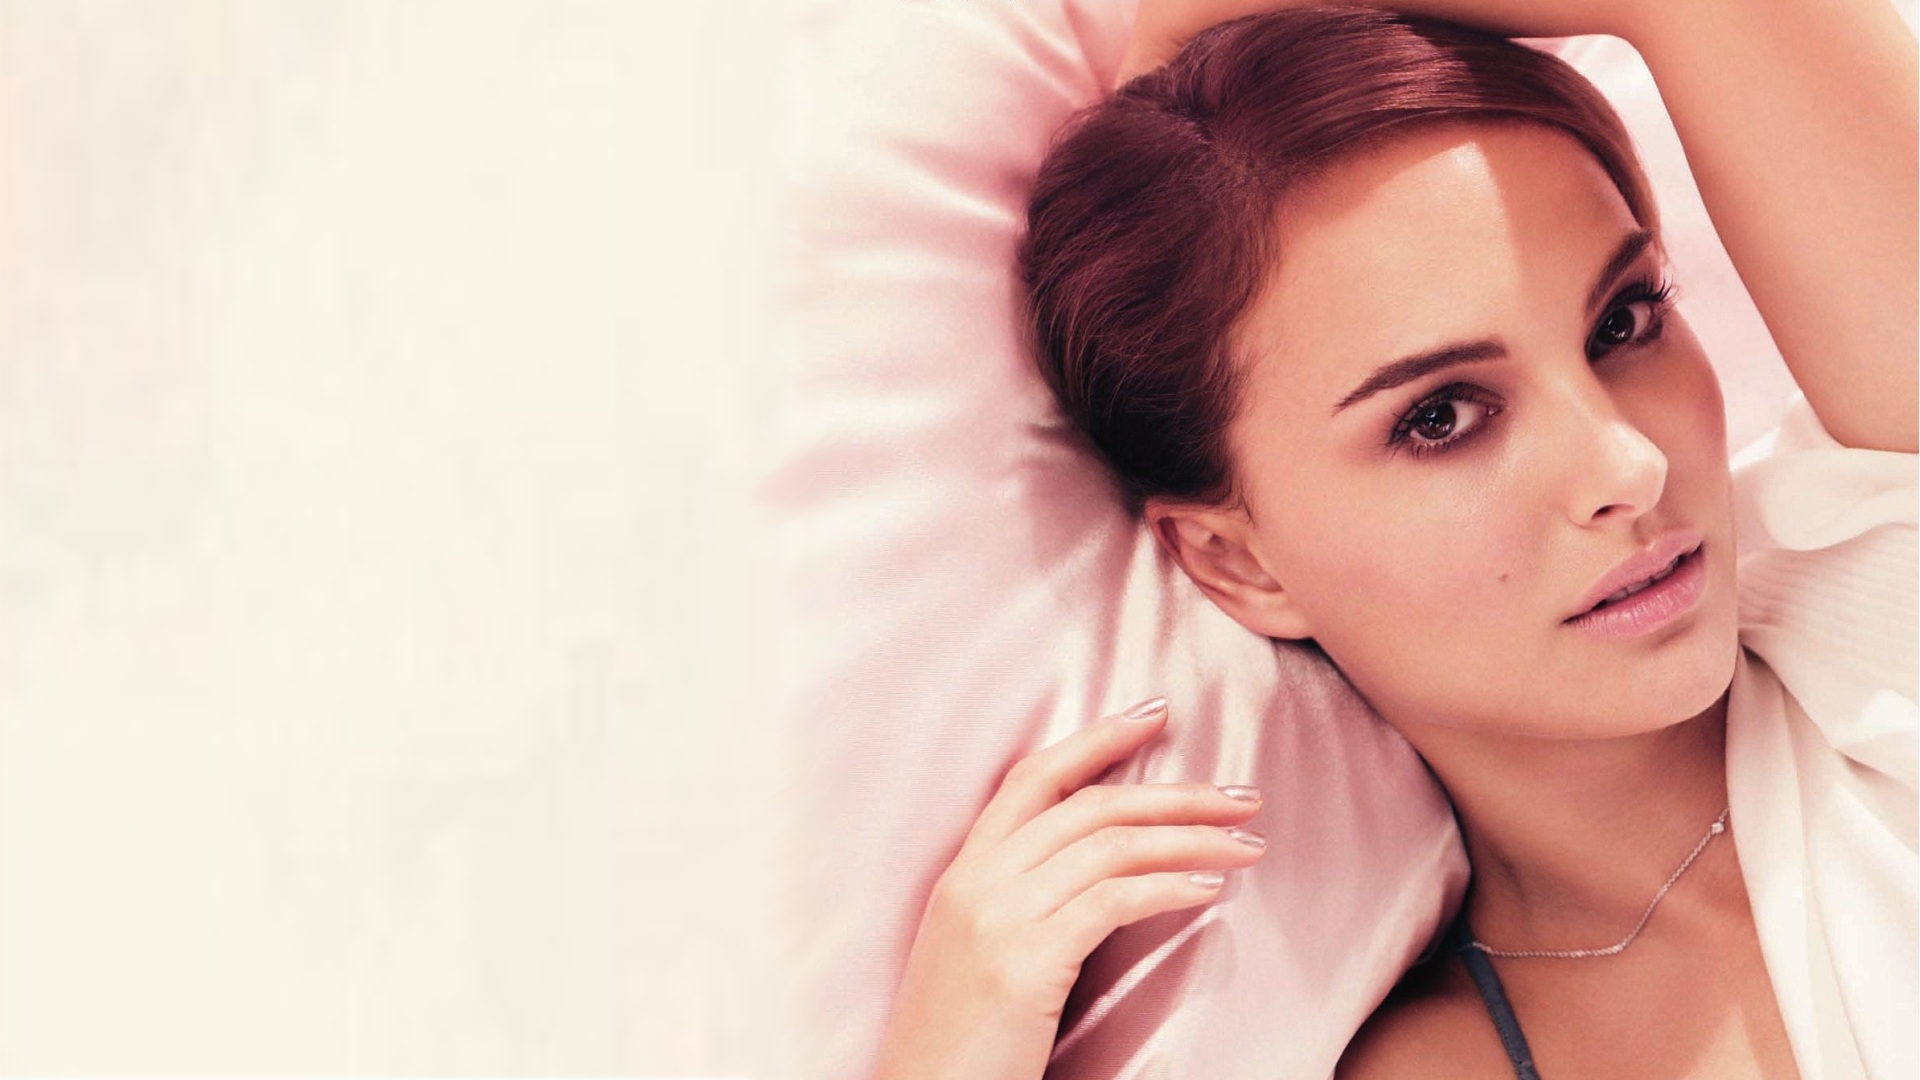 Natalie Portman Hottest And Sexy Hd Wallpapers - All Hd -5450